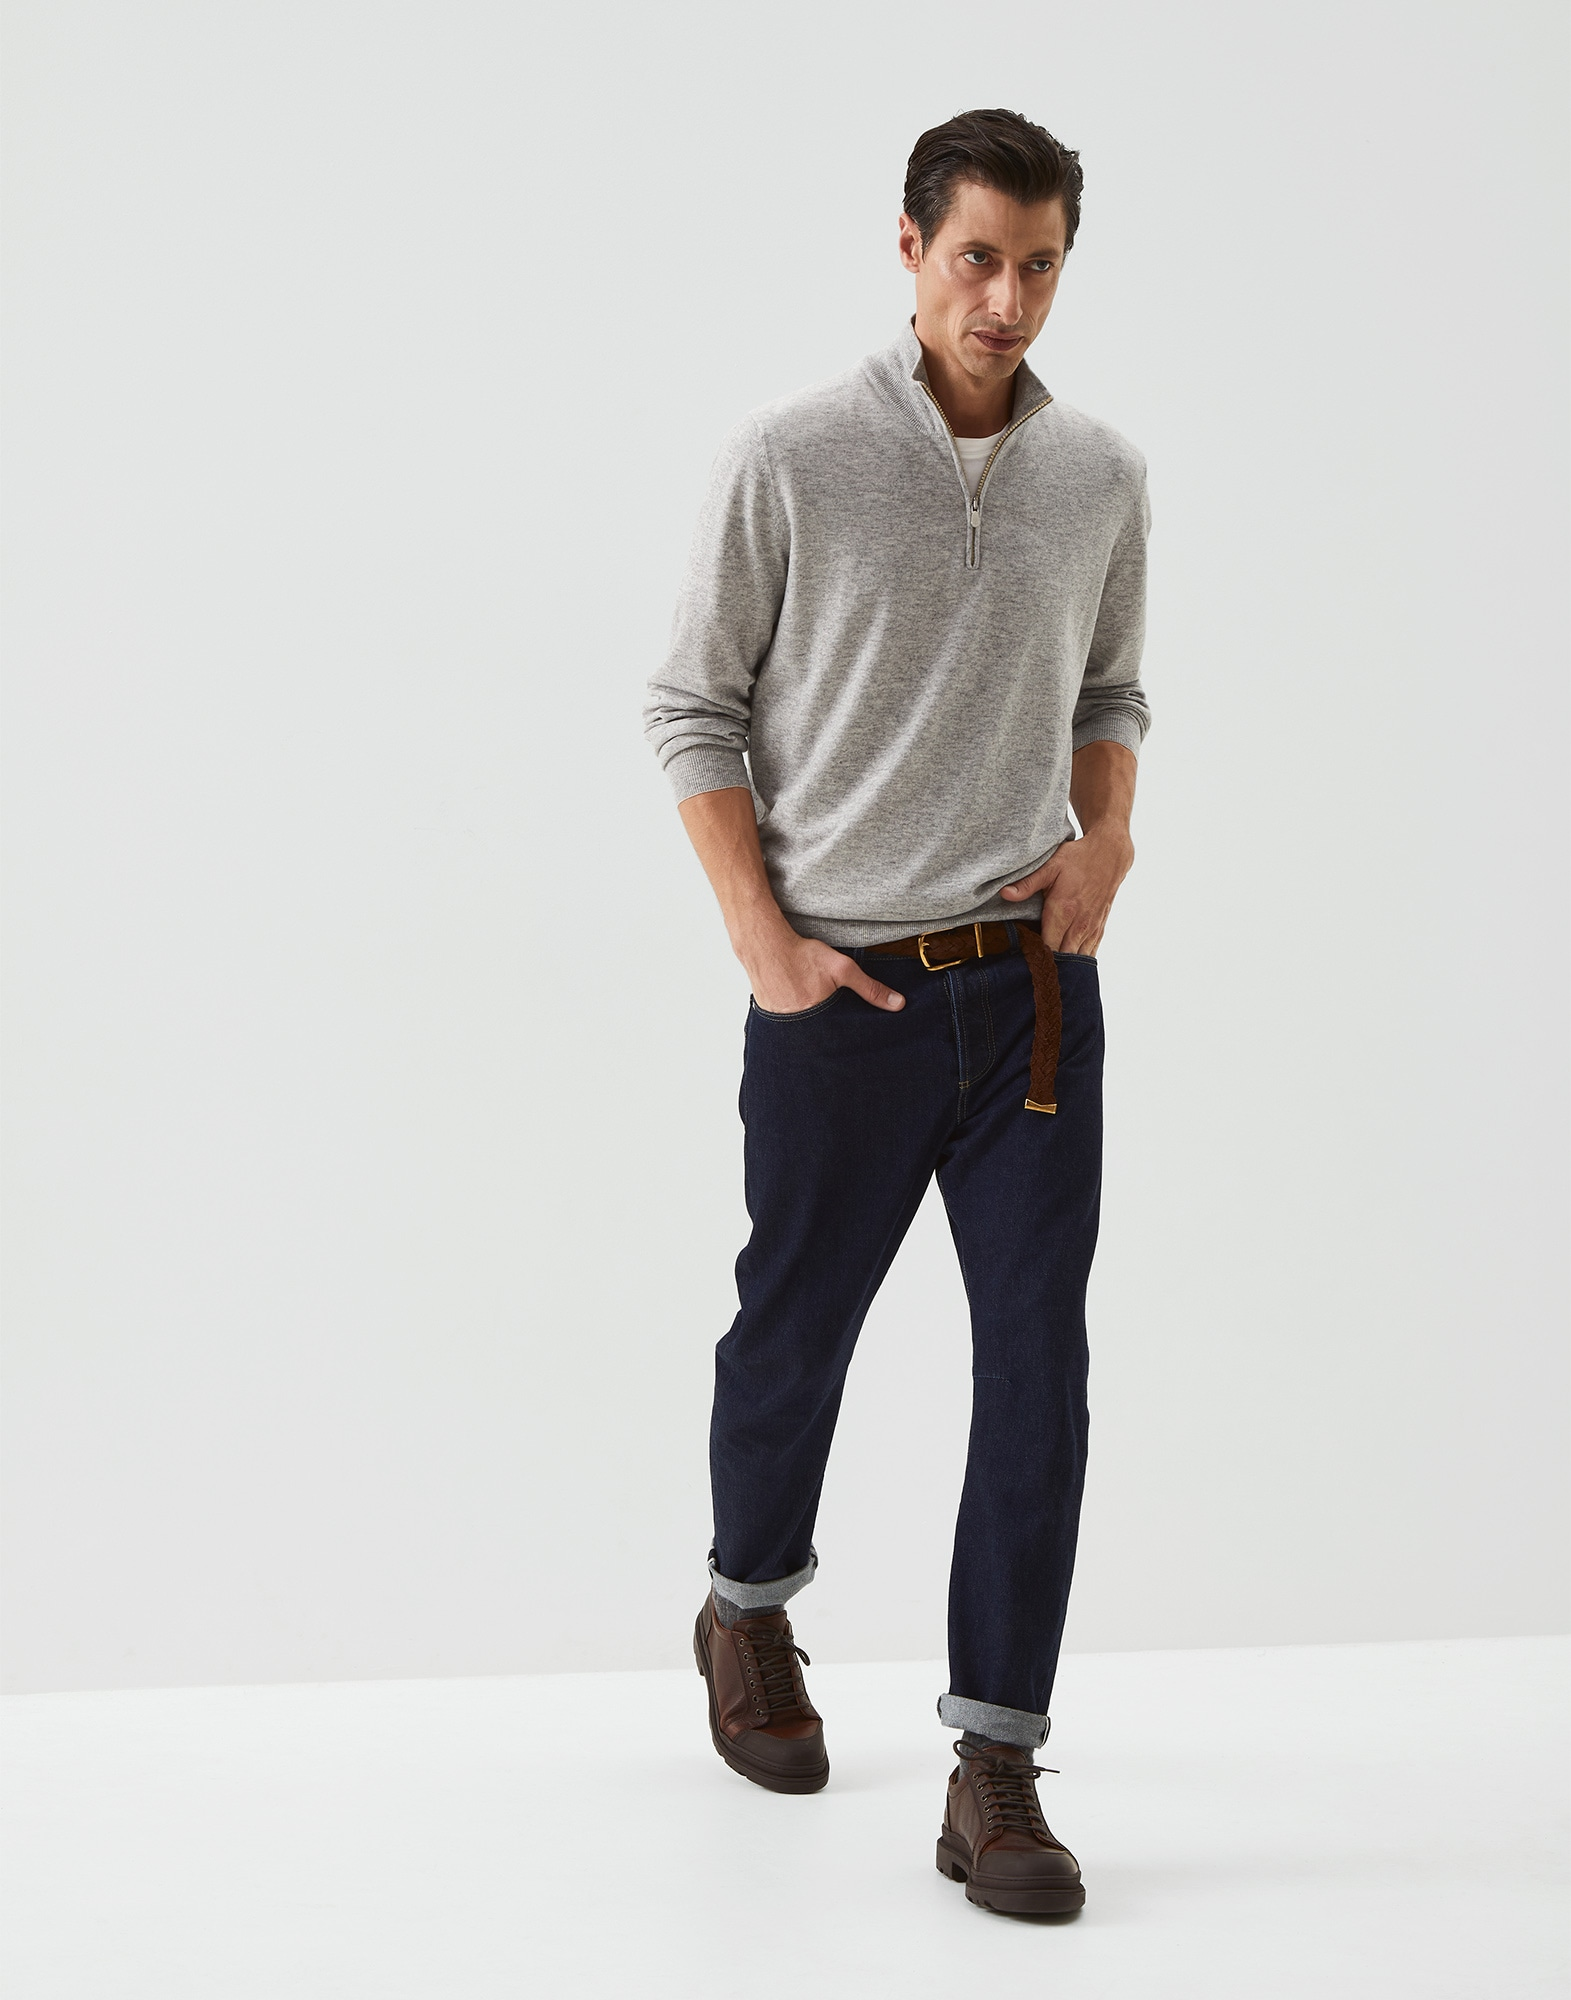 High Neck Sweater Pebble Man 4 - Brunello Cucinelli